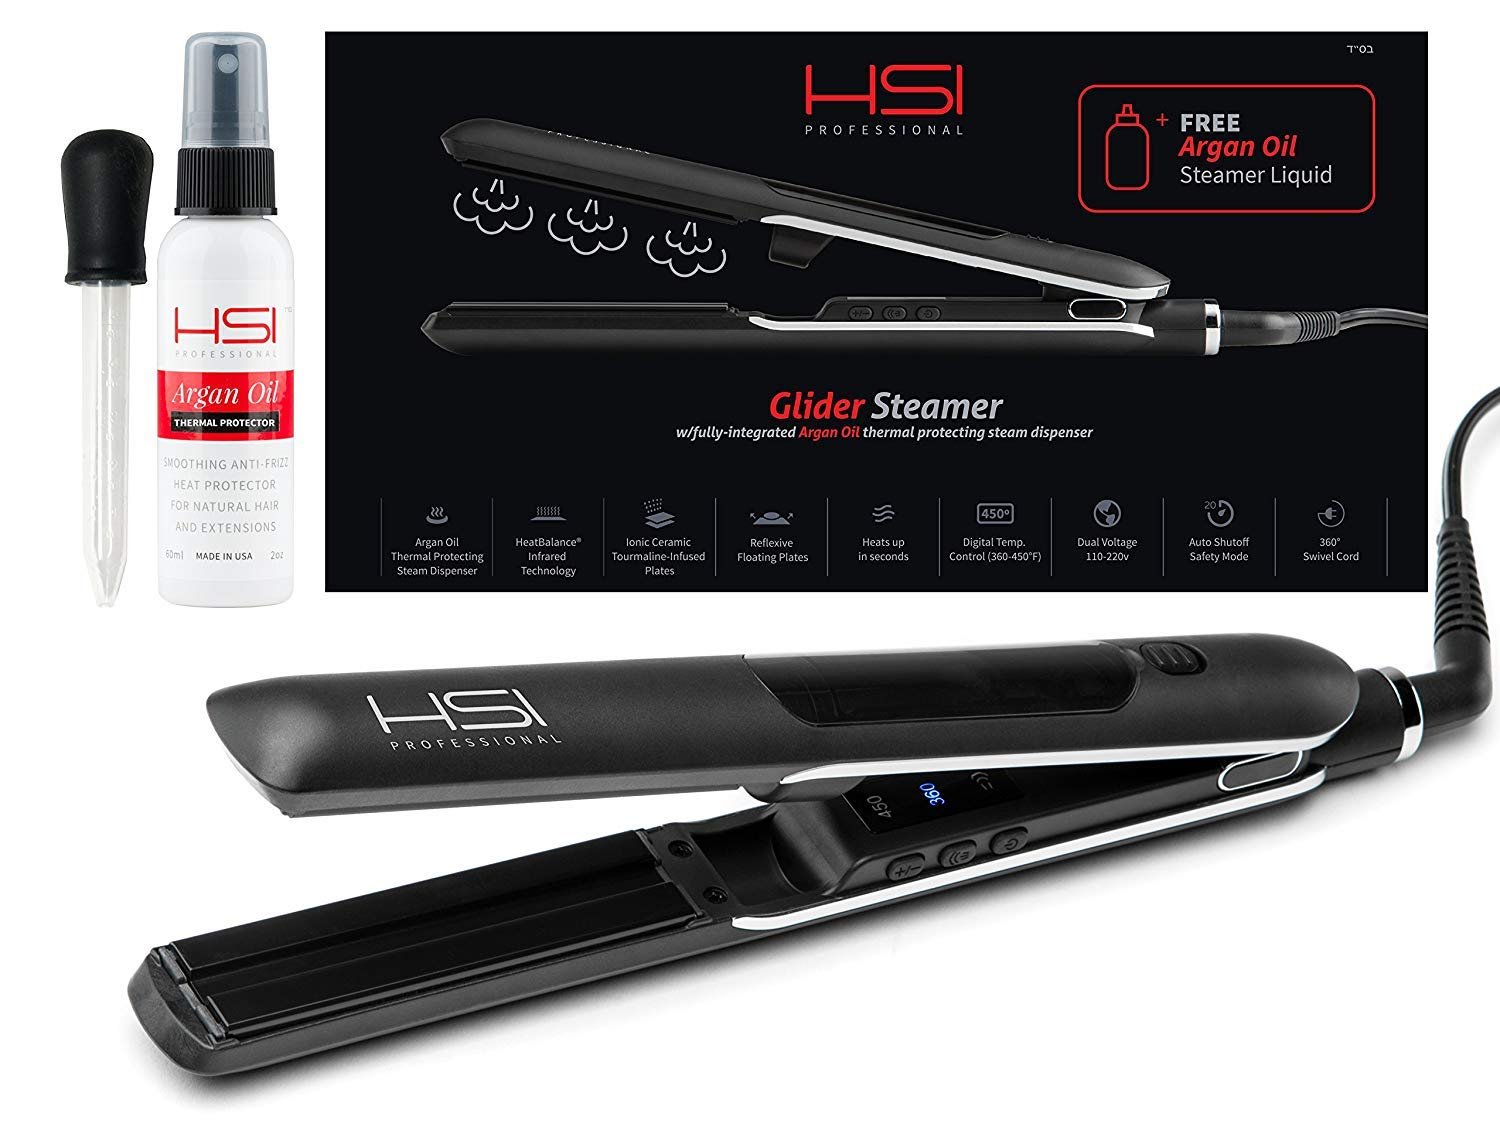 HSI Professional Glider Steamer Ceramic Flat Iron | Dispenses Argan Oil Infused Steam